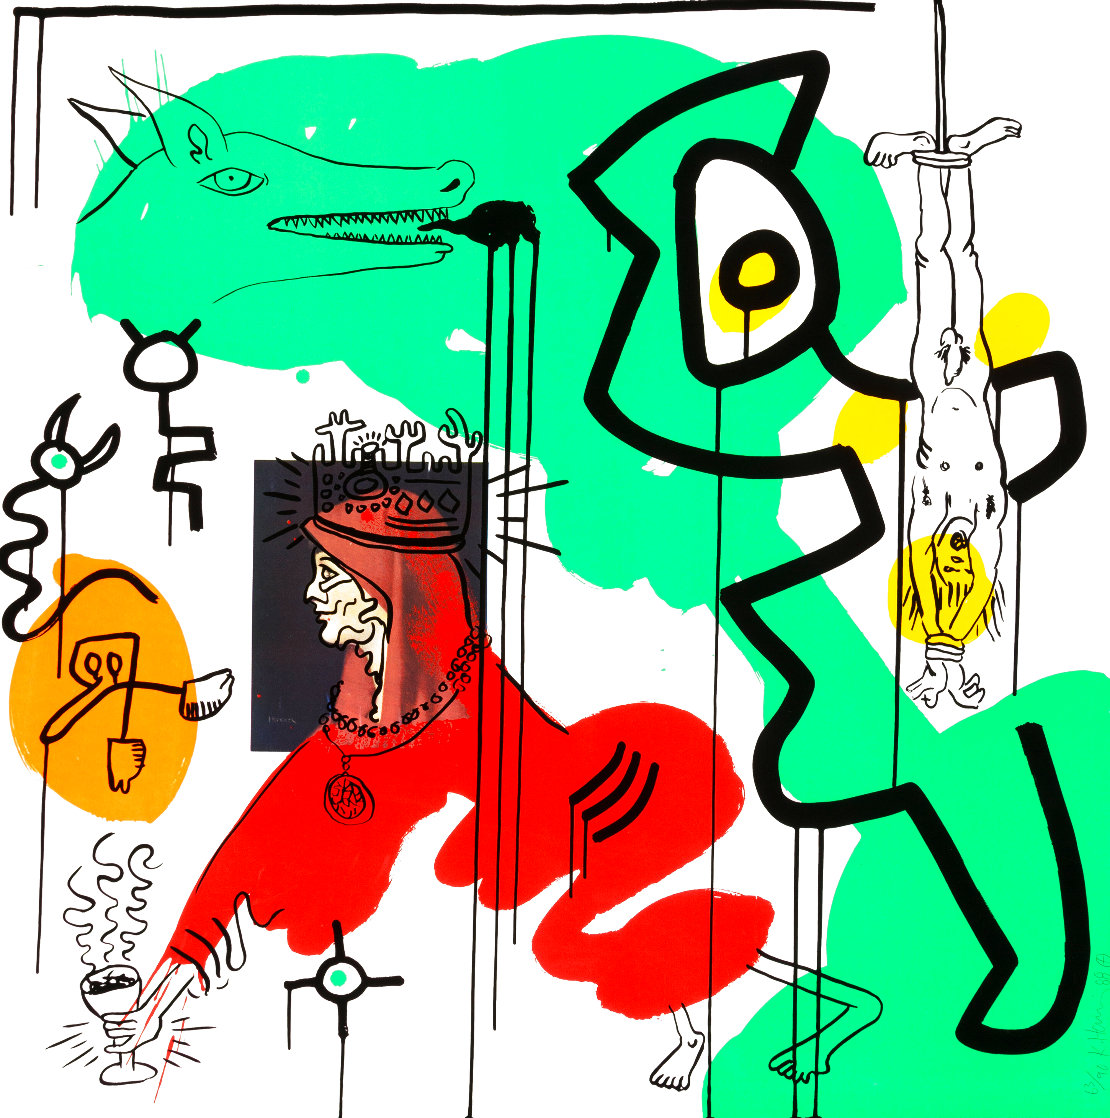 Apocalypse 9 From the Apocalypse Series 1988 HS Limited Edition Print by Keith Haring